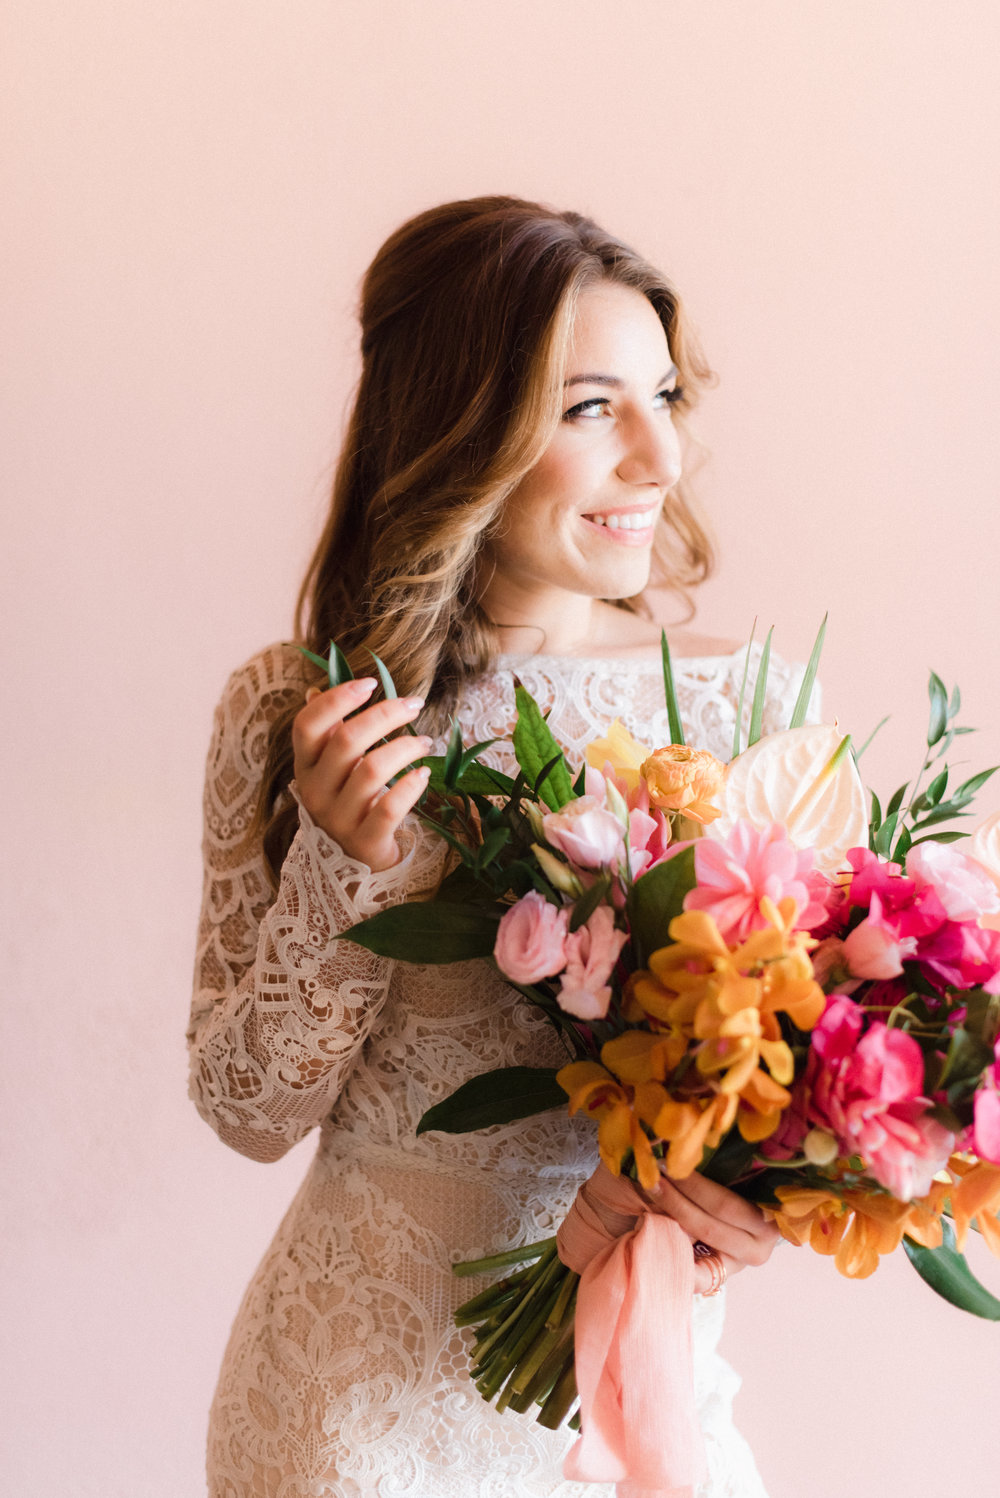 bright pink and orange tropical wedding florals for a wild bouquet.jpg